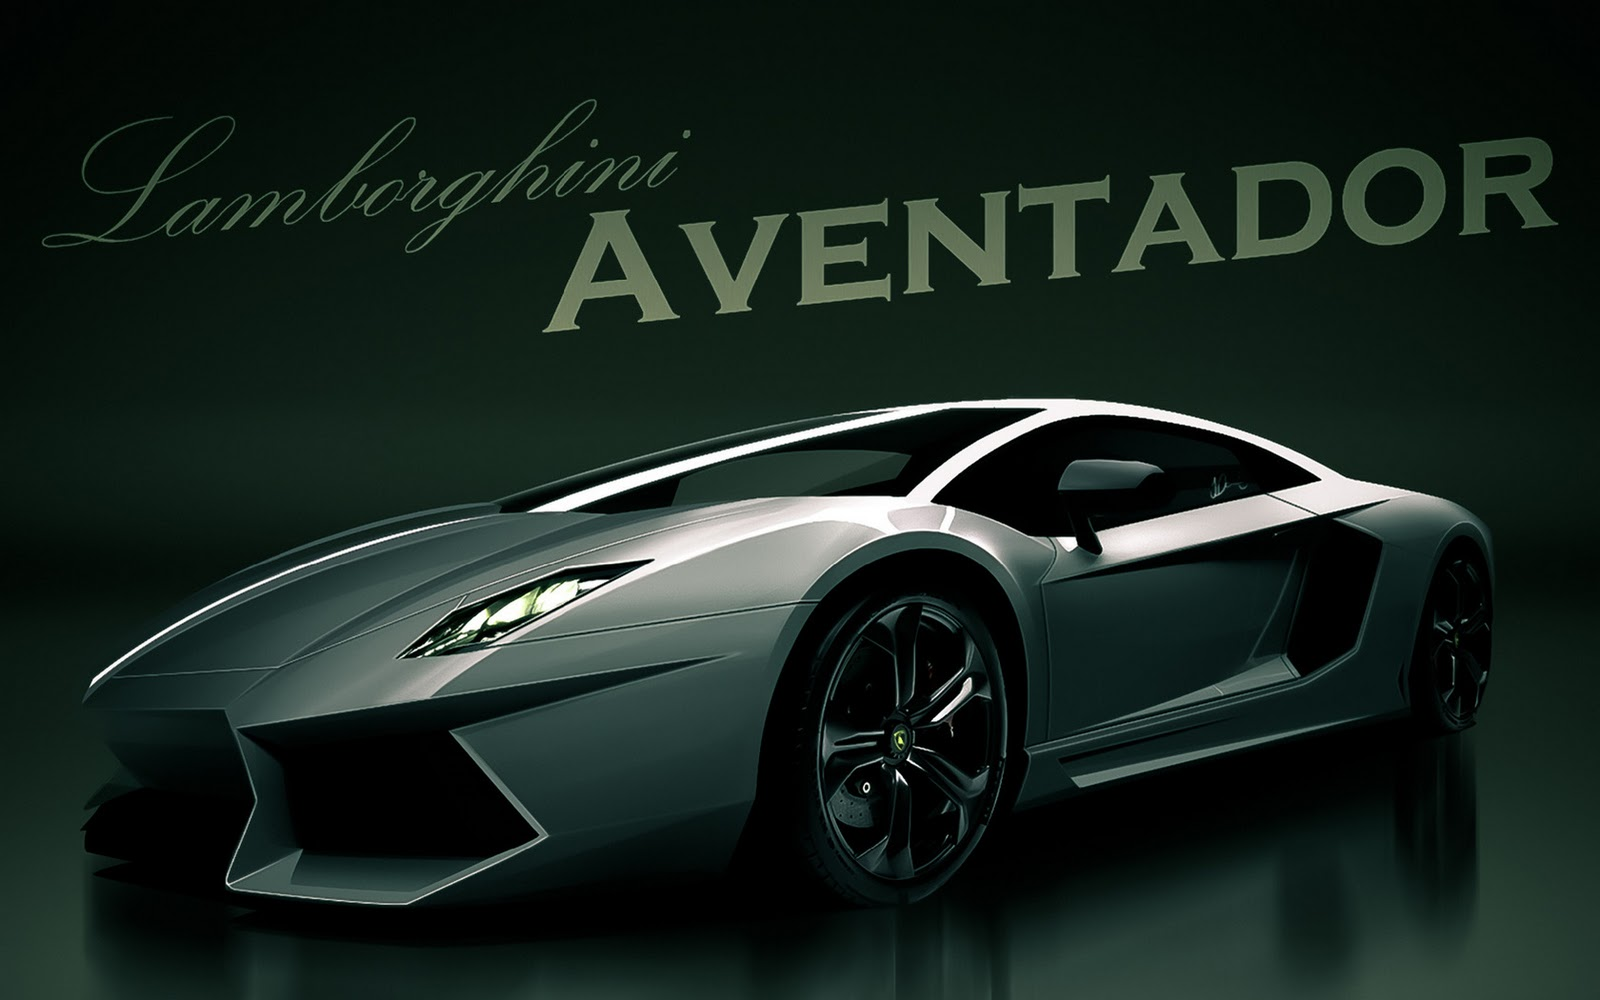 lamborghini aventador wallpaper | World of Cars